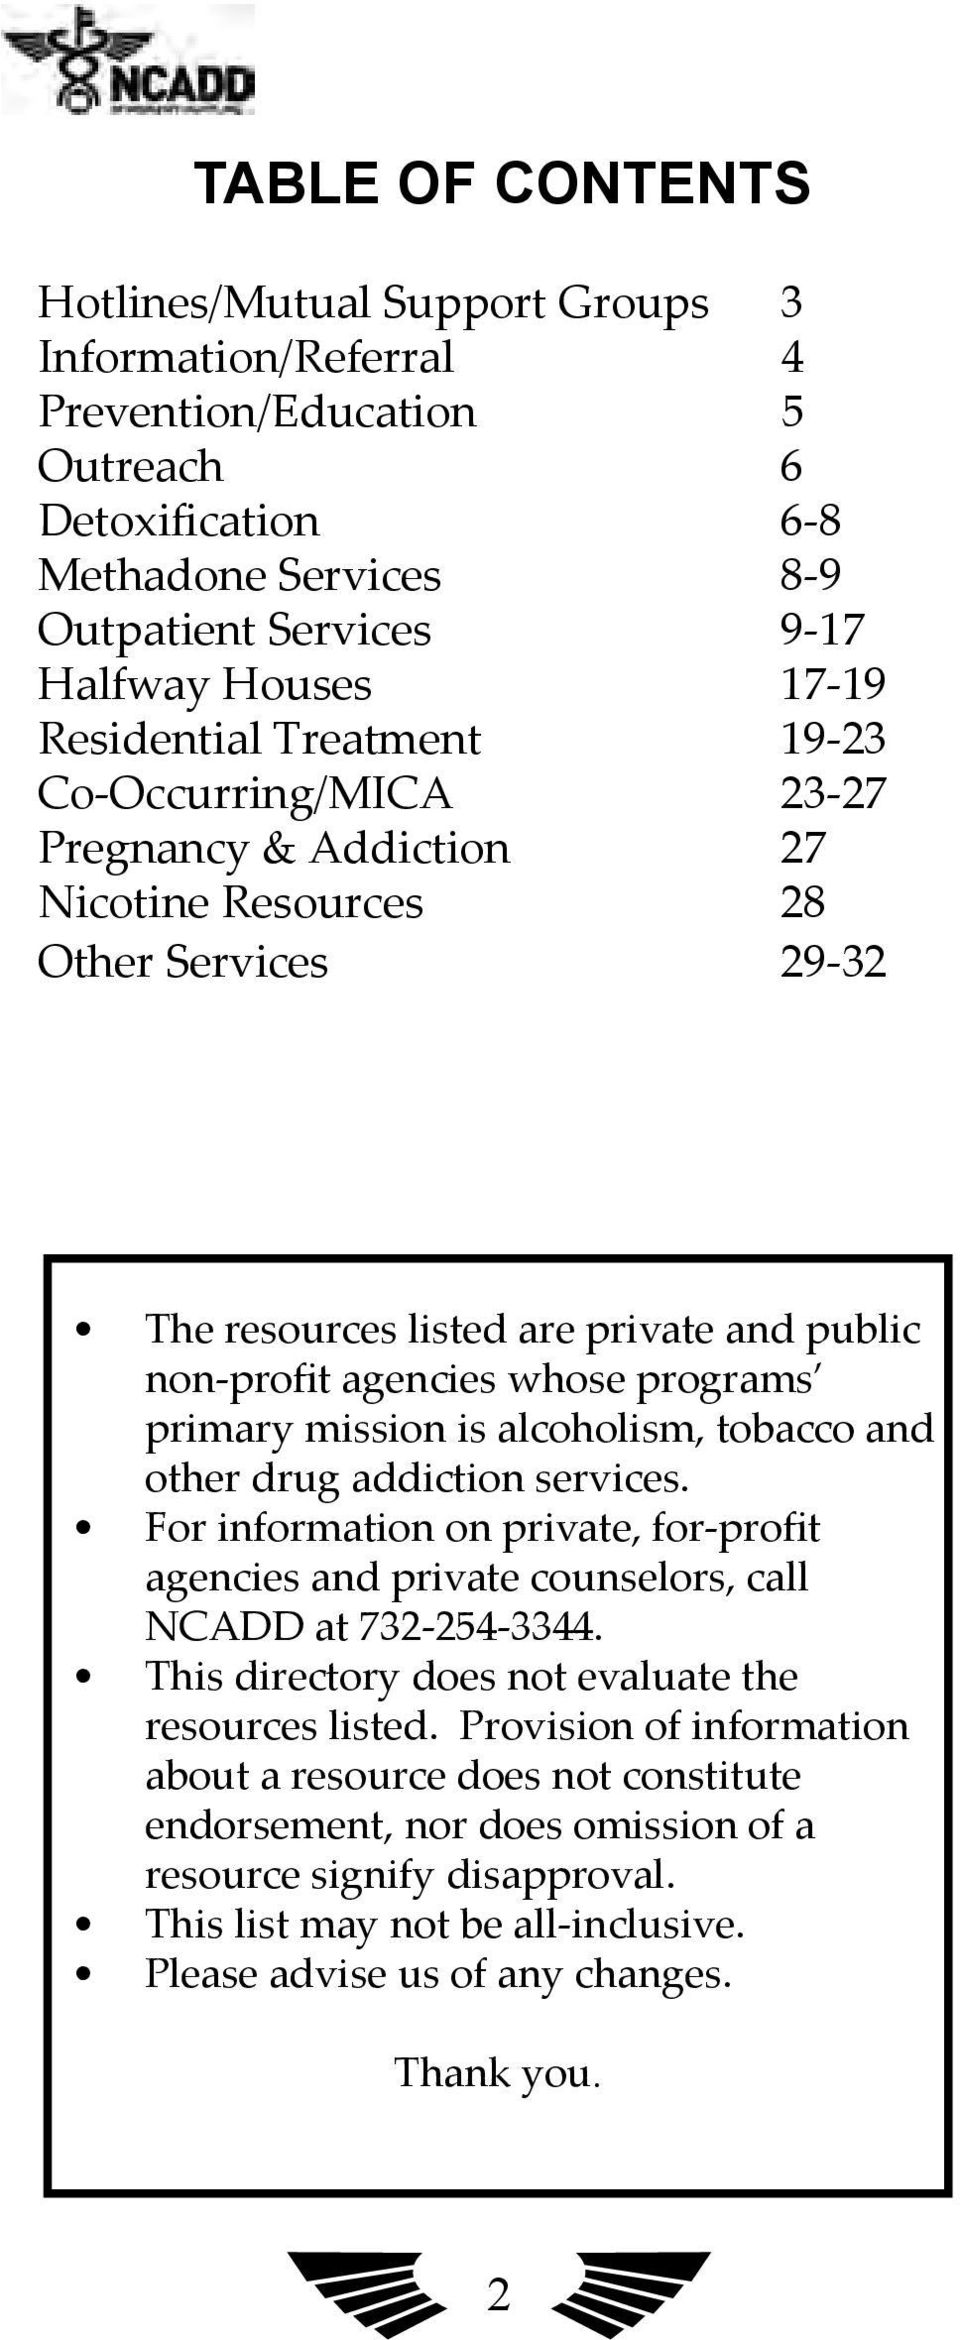 primary mission is alcoholism, tobacco and other drug addiction services. For information on private, for-profit agencies and private counselors, call NCADD at 732-254-3344.